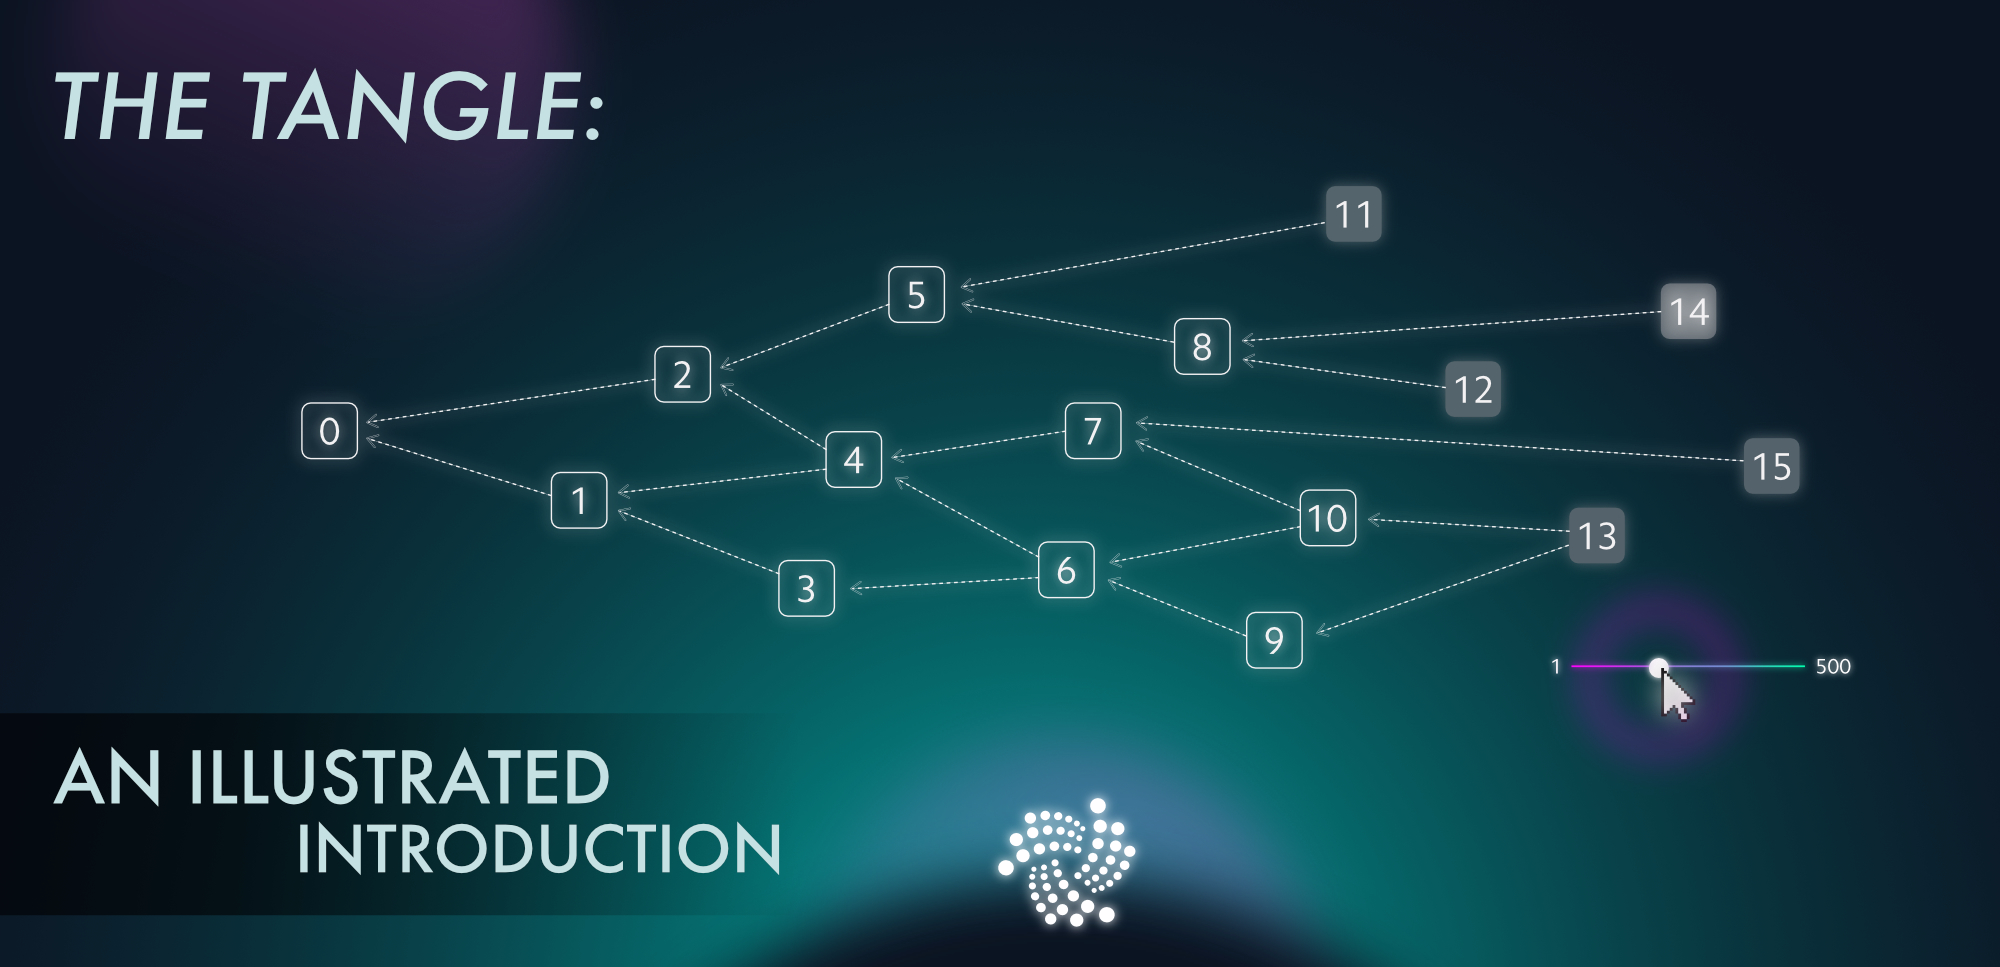 the tangle an illustrated introduction iota